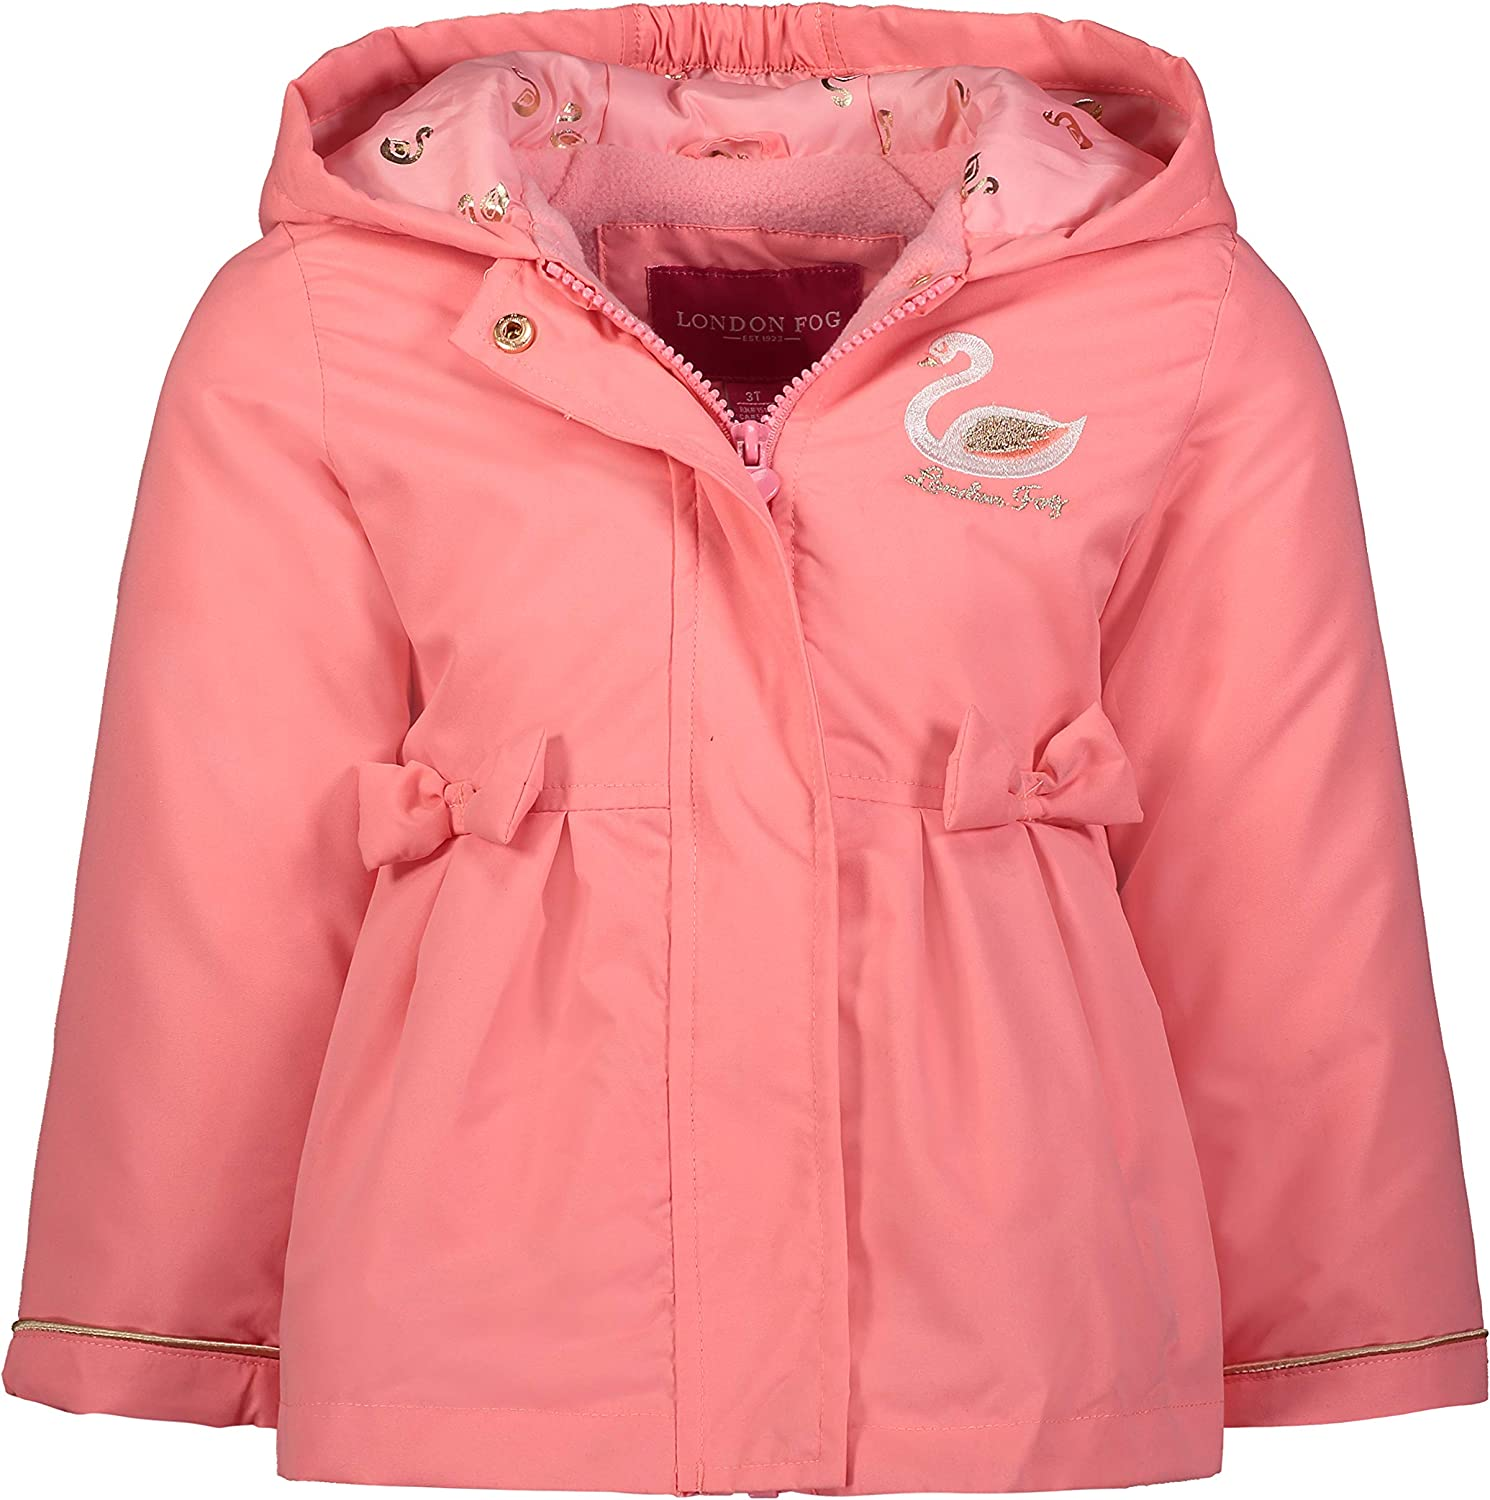 LONDON FOG Baby Girls' Perfect quality Purchase assurance Lined Fleece Jacket